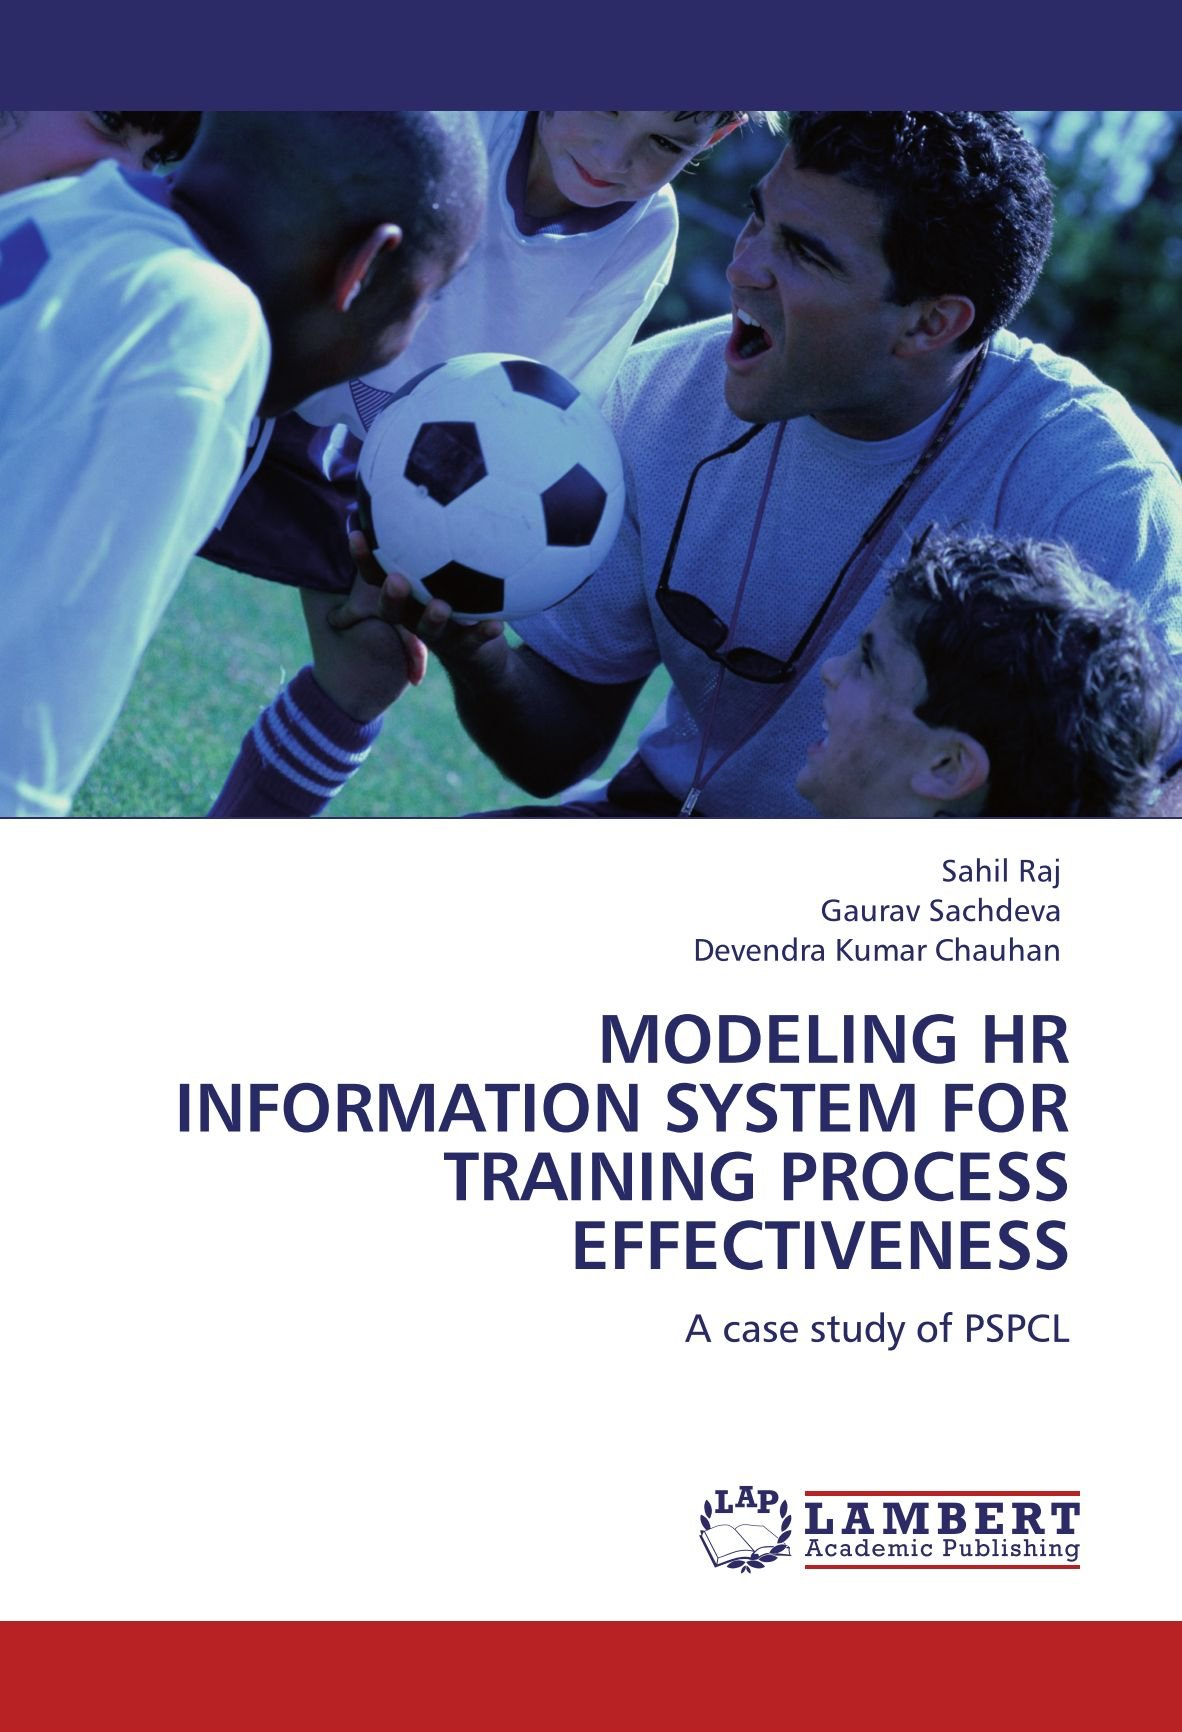 MODELING HR INFORMATION SYSTEM FOR TRAINING PROCESS EFFECTIVENESS: A case study of PSPCL ebook